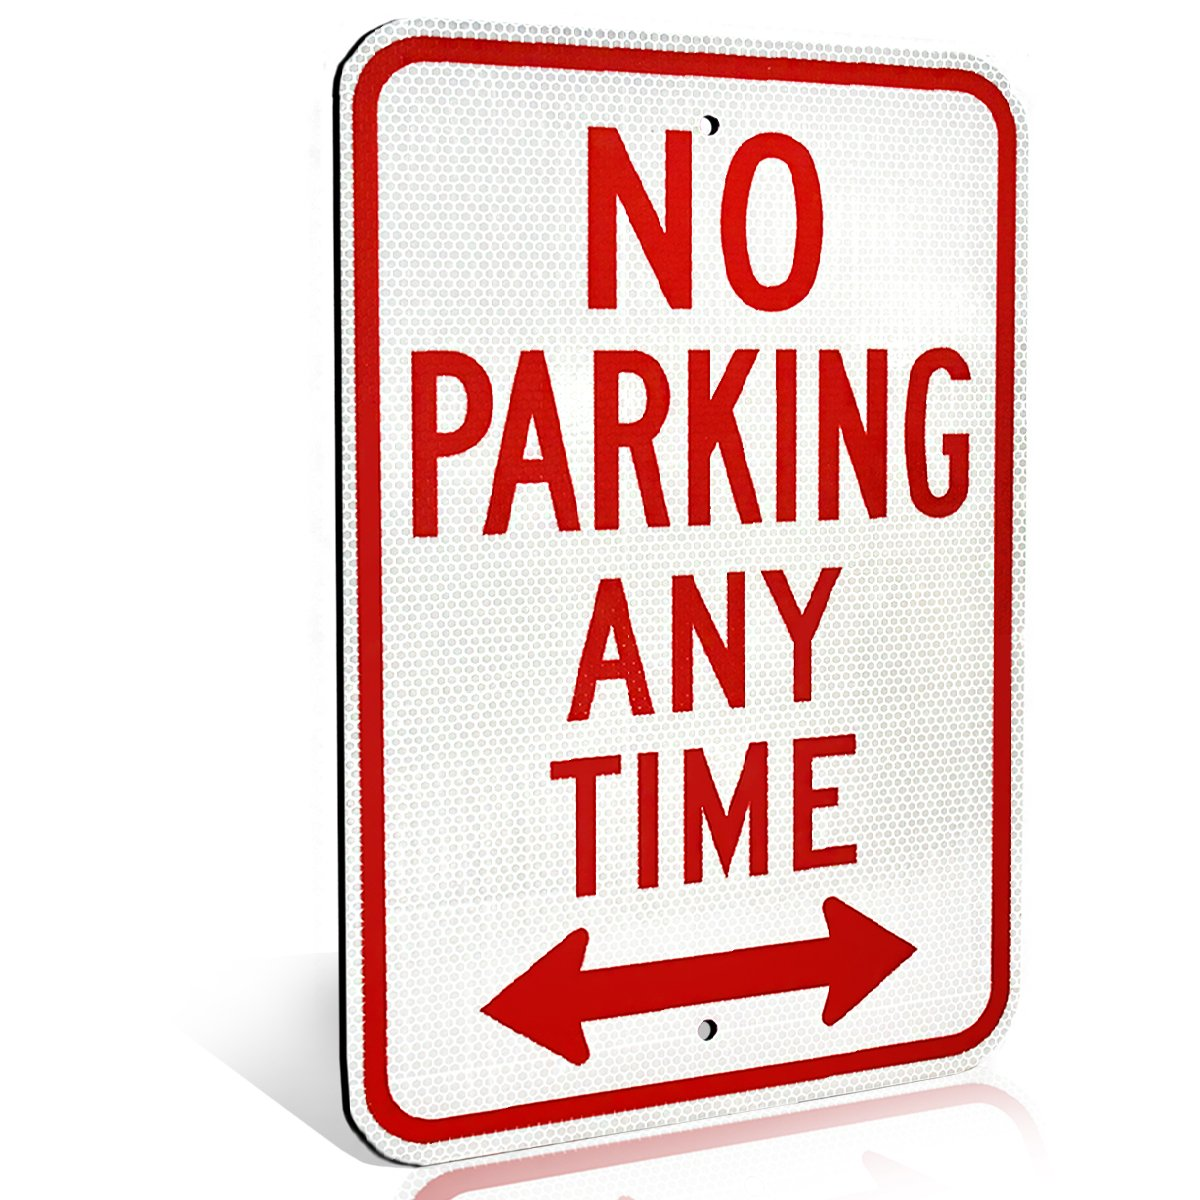 No Parking Anytime Aluminum Metal Sign with arrow for Private Driveway and Streets | Diamond Grade Ultra Reflective